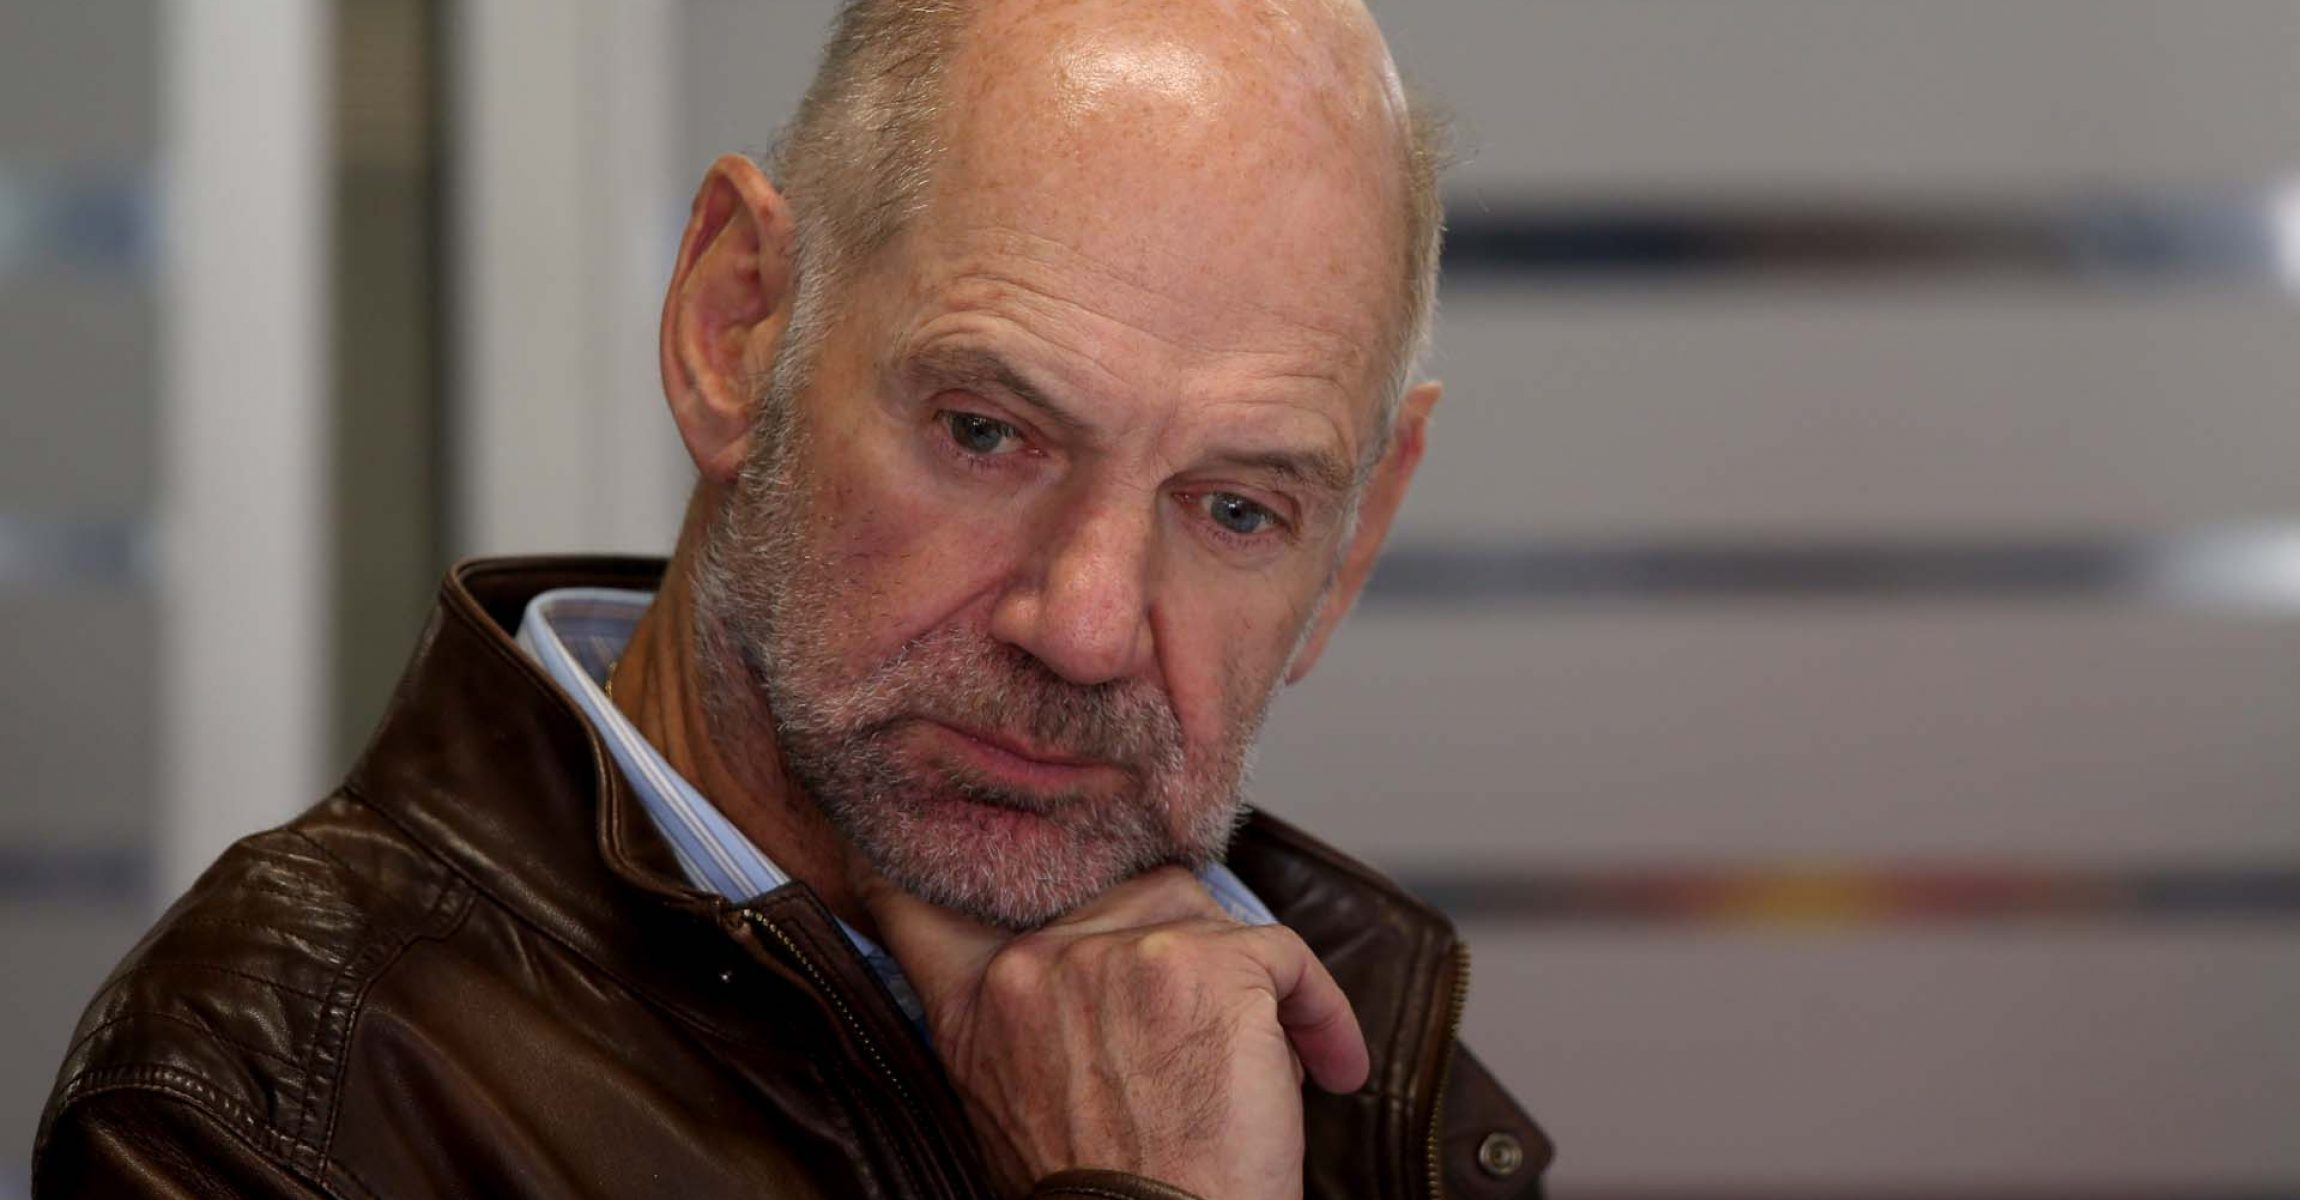 BARCELONA, SPAIN - FEBRUARY 21: Adrian Newey, the Chief Technical Officer of Red Bull Racing looks on in the garage  during day three of F1 Winter Testing at Circuit de Barcelona-Catalunya on February 21, 2020 in Barcelona, Spain. (Photo by Charles Coates/Getty Images) // Getty Images / Red Bull Content Pool  // AP-2369VCBRW2111 // Usage for editorial use only //